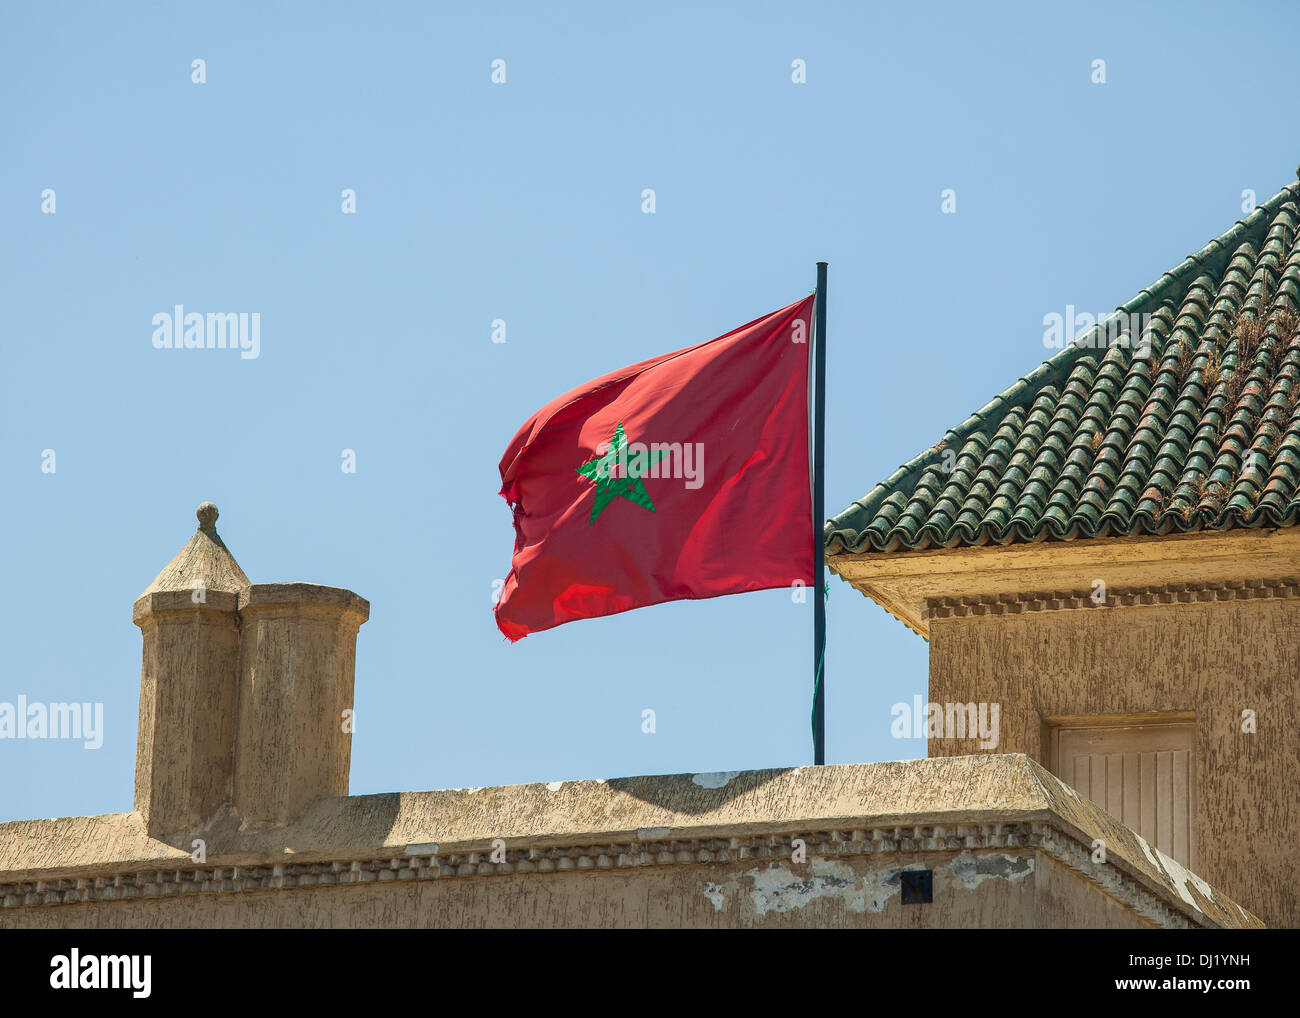 The Moroccan flag. Red with a green pentagram - Stock Image